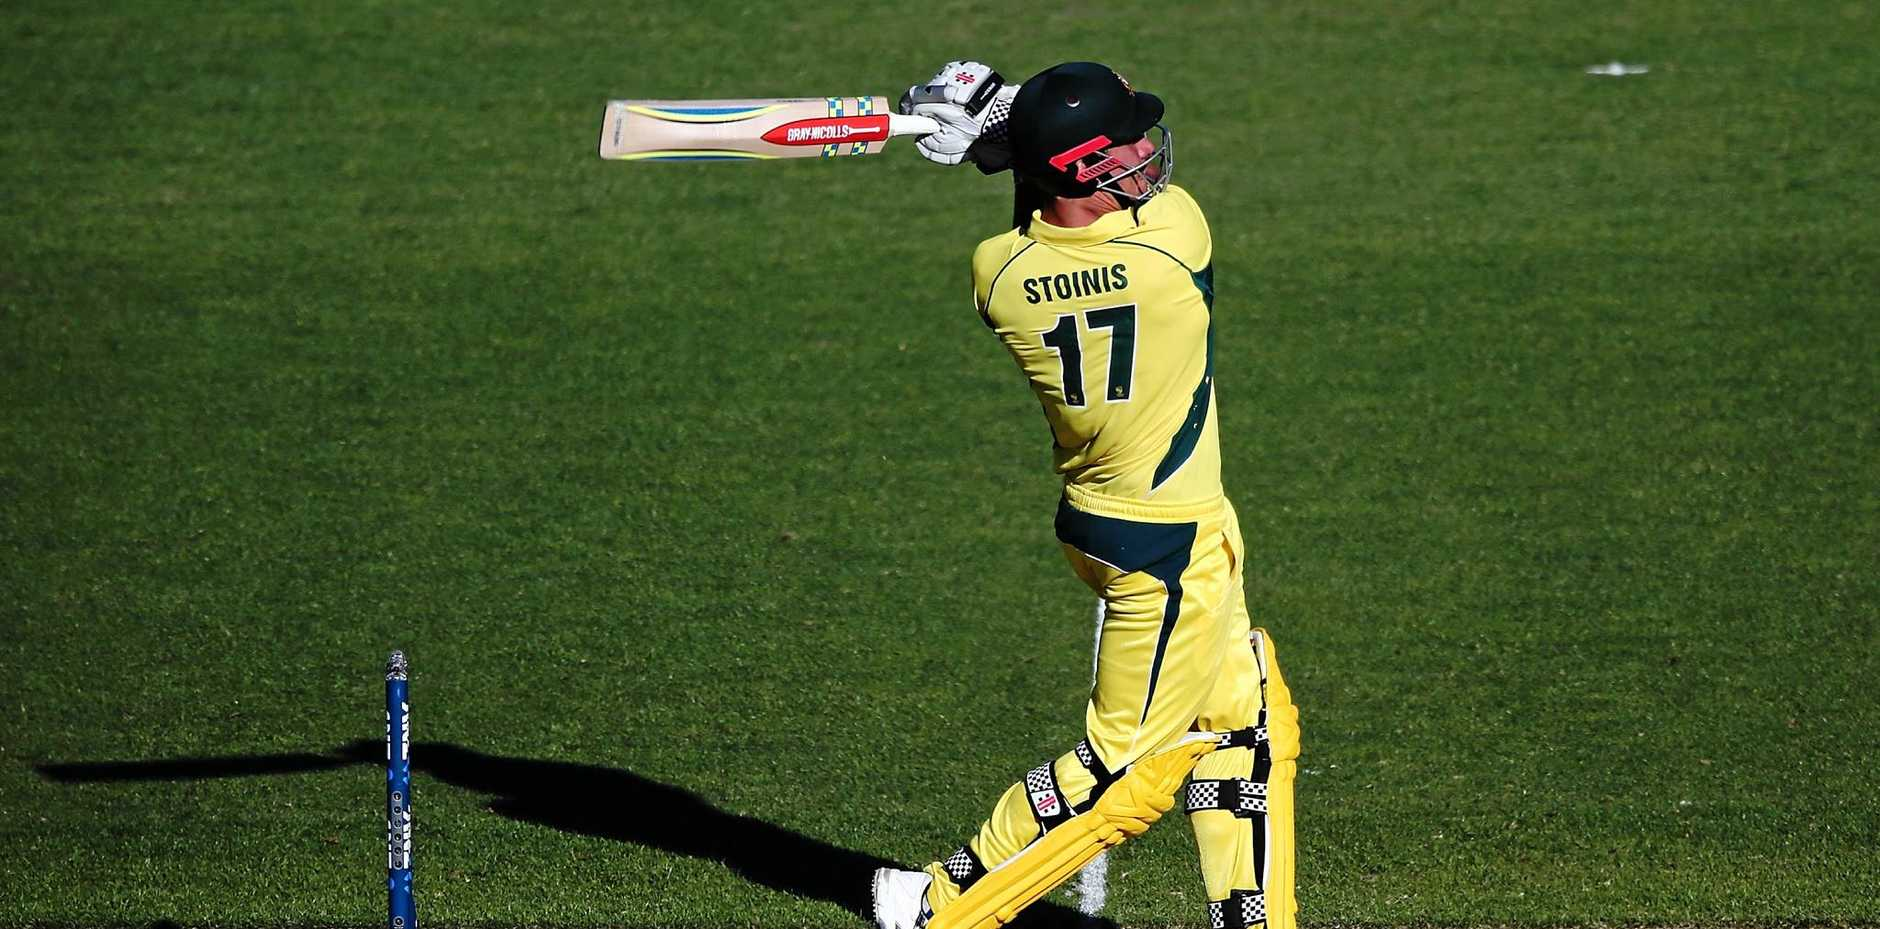 Marcus Stoinis  bats during the first One Day International game between New Zealand and Australia at Eden Park